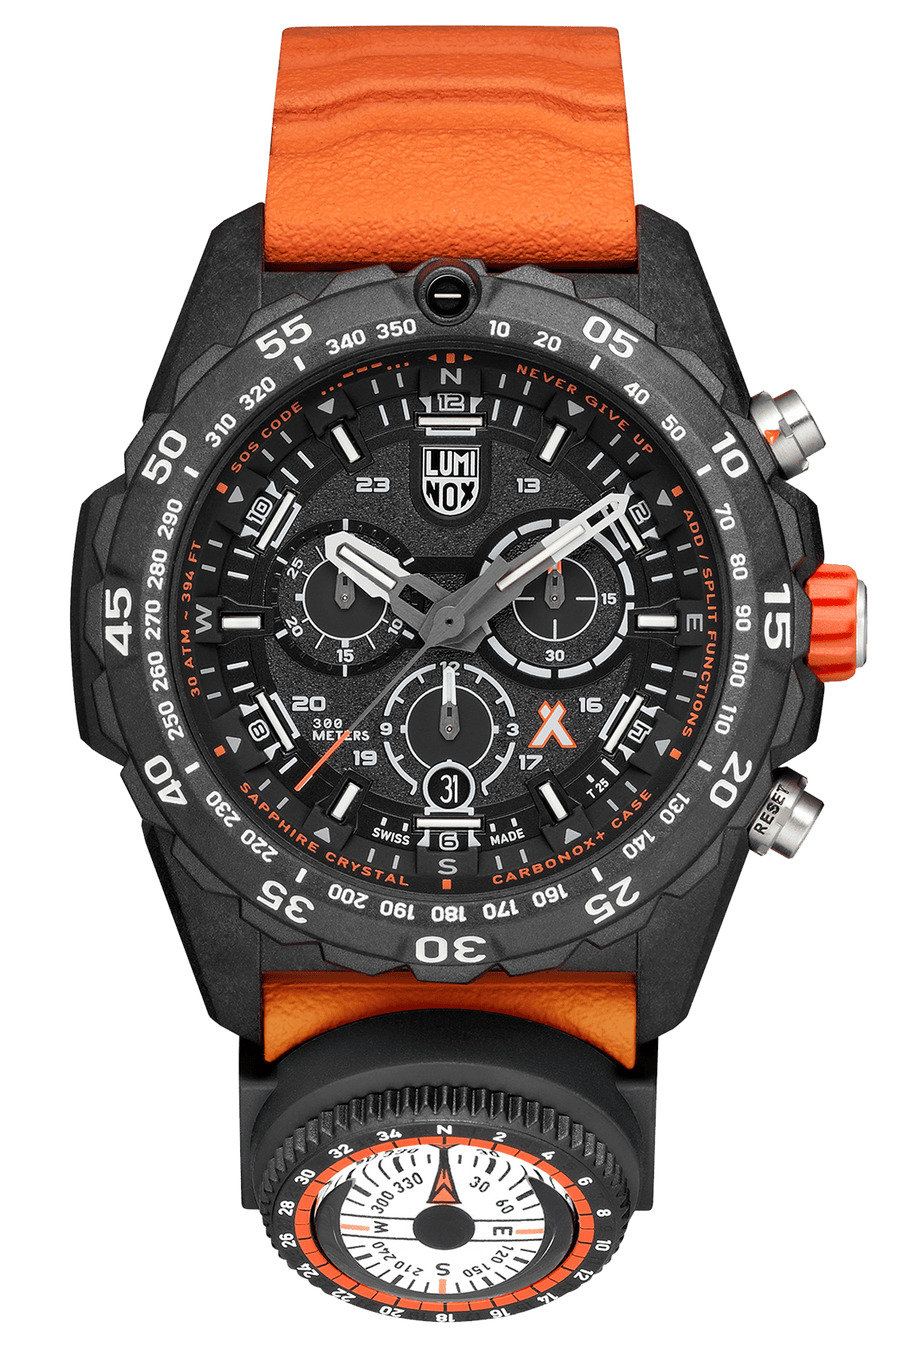 Bear Grylls Survival Chronograph MASTER Series - 3749